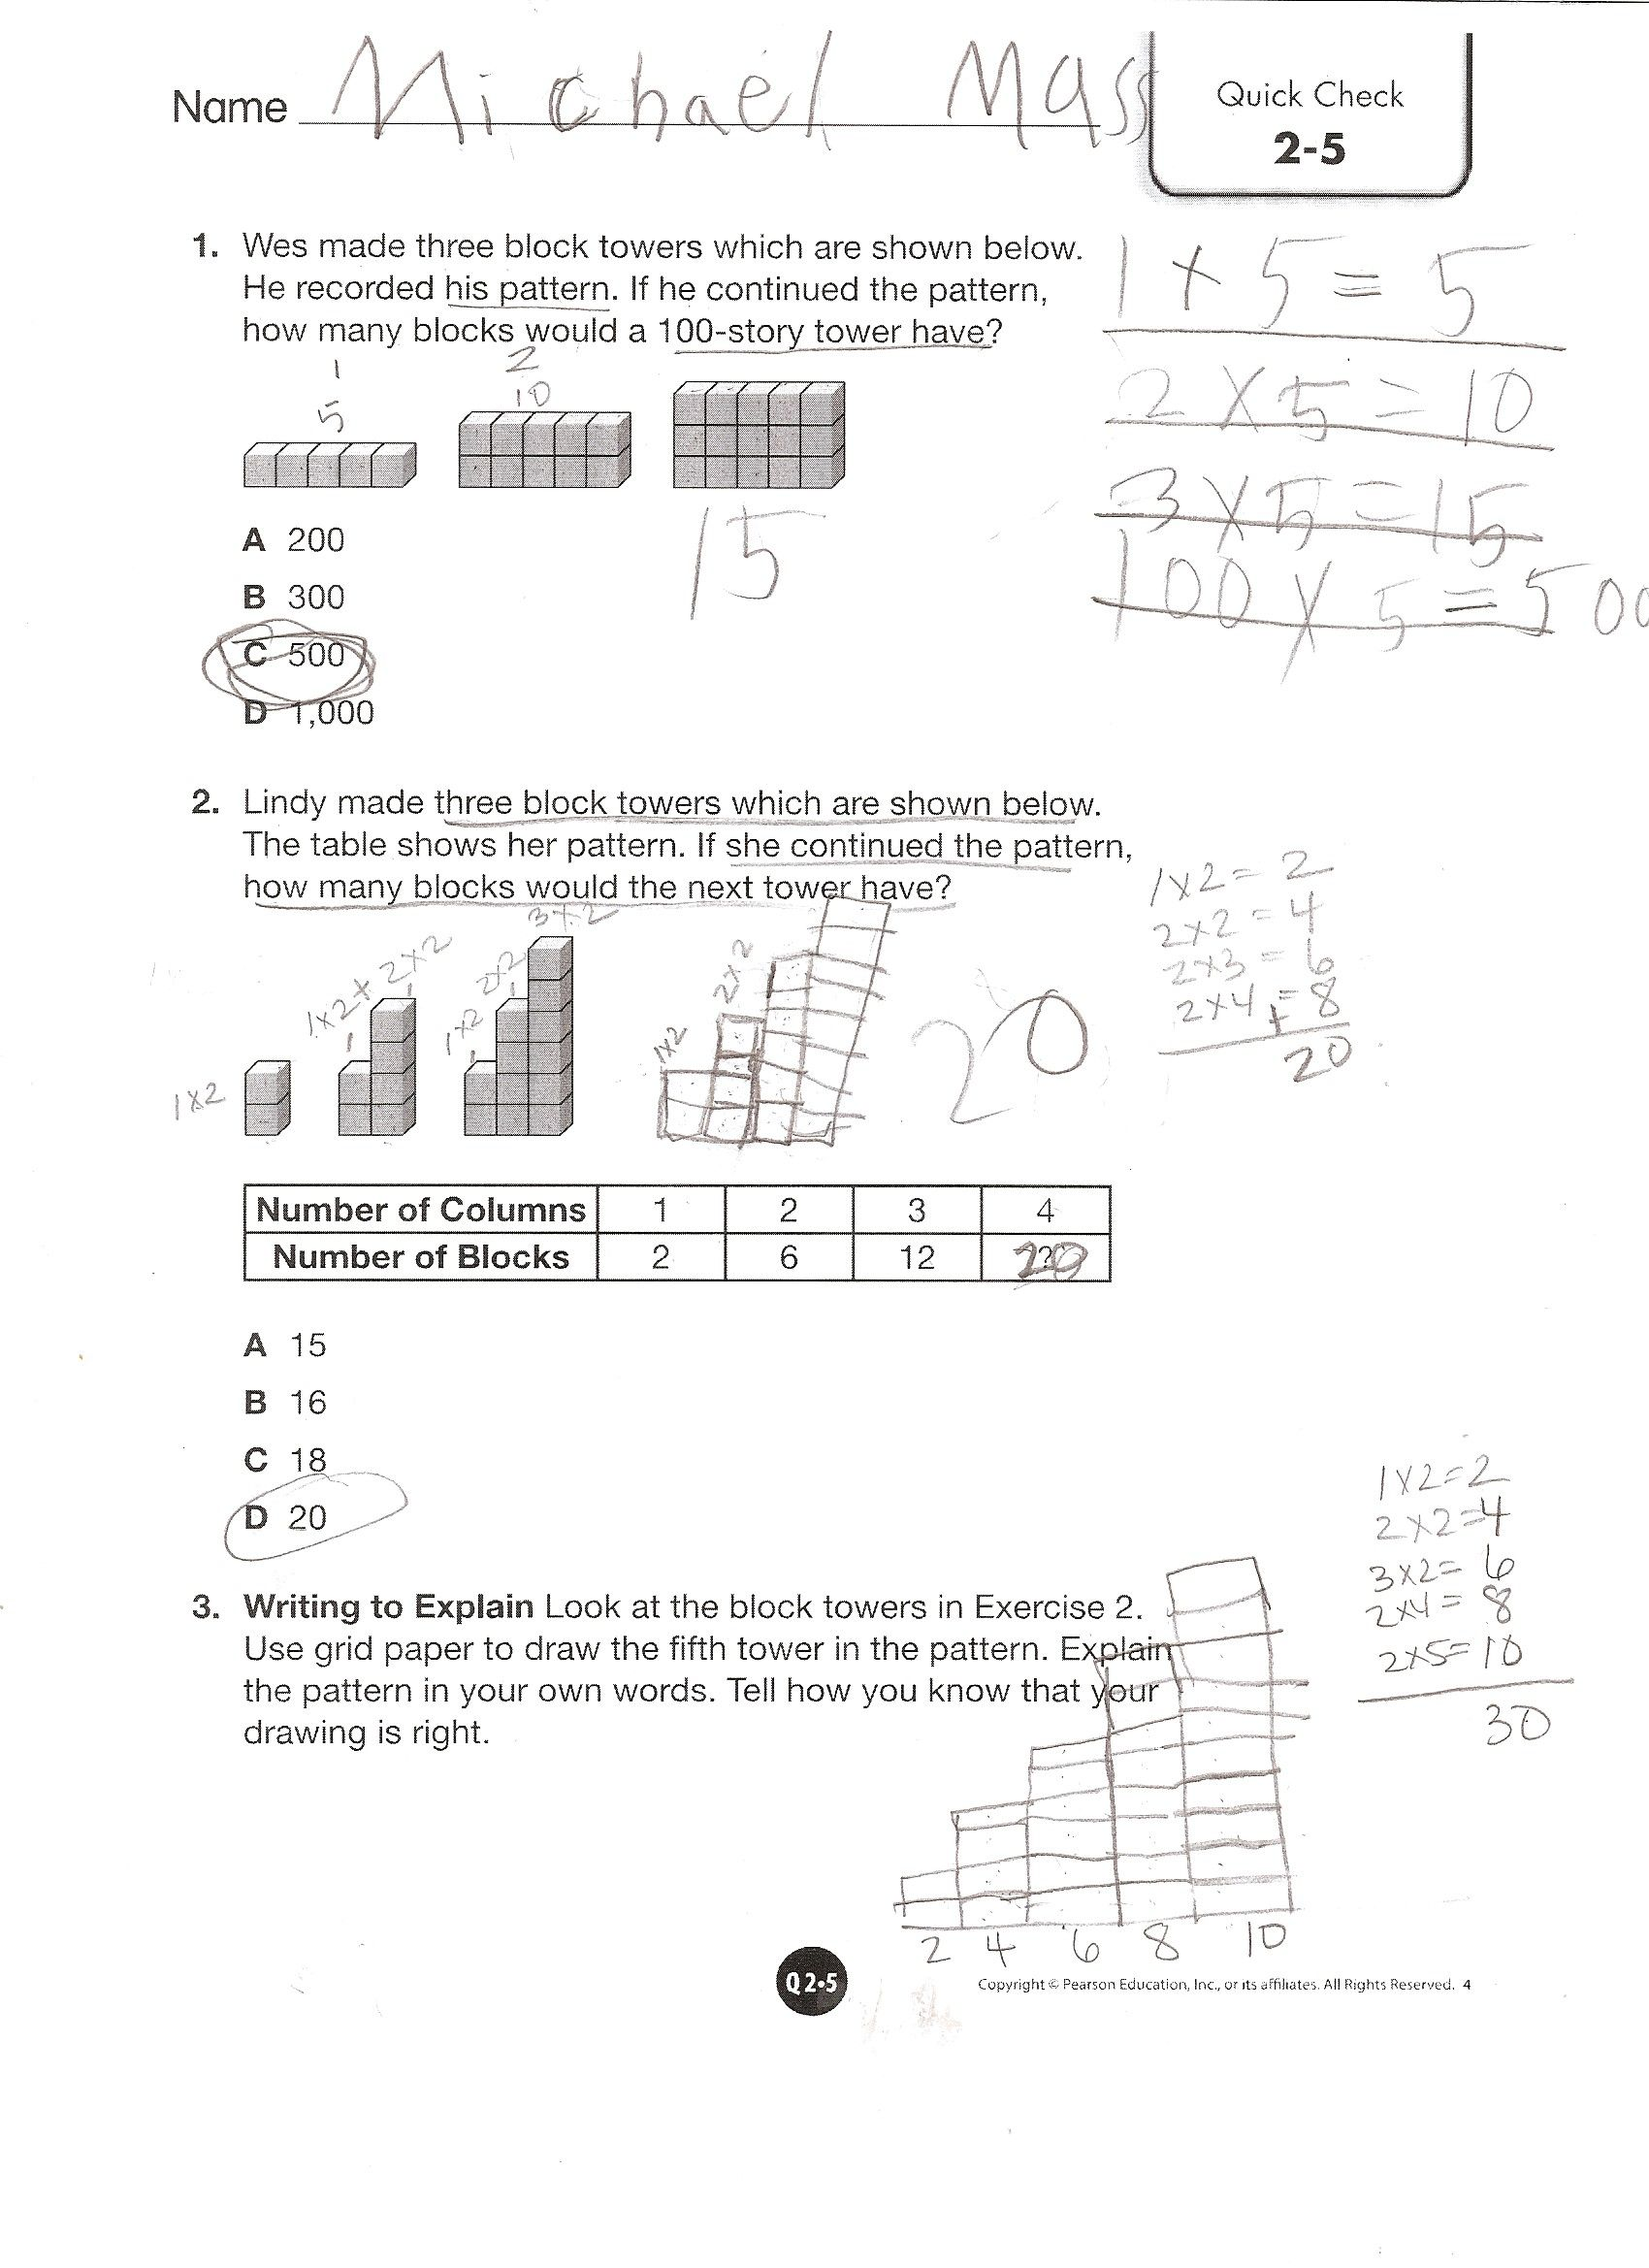 Envision Math Grade 4 Topic 2 5 Quick Check